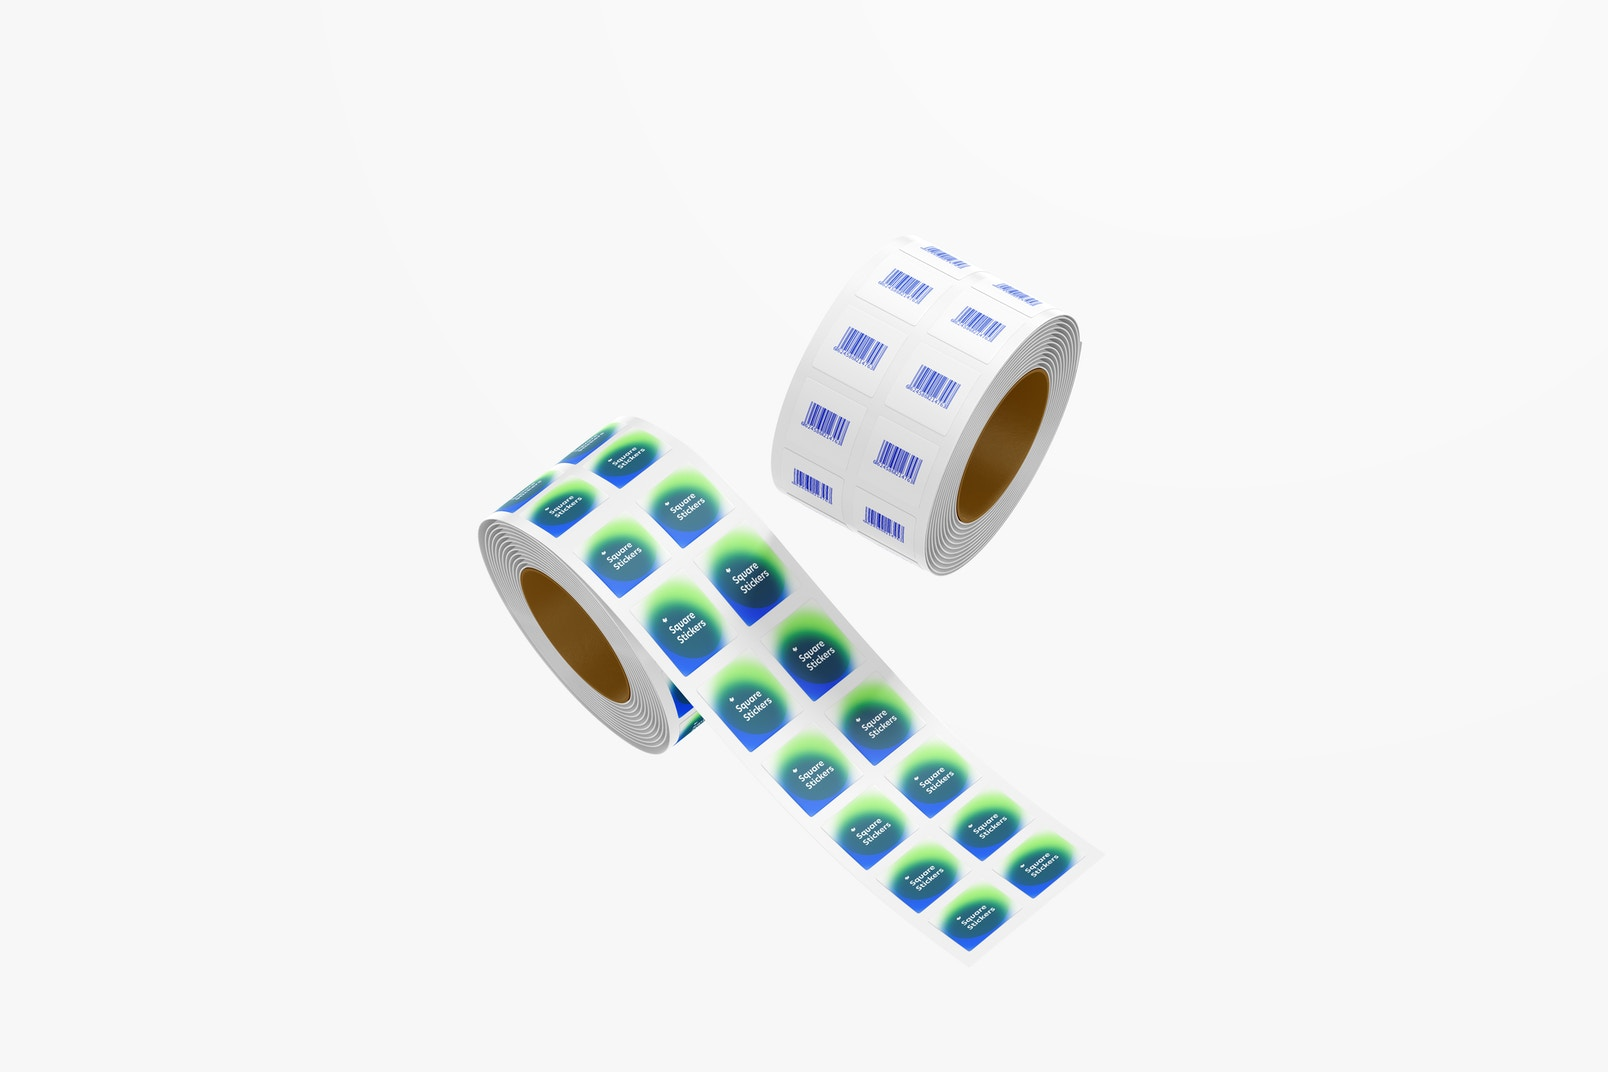 Square Stickers Rolls Mockup, Floating